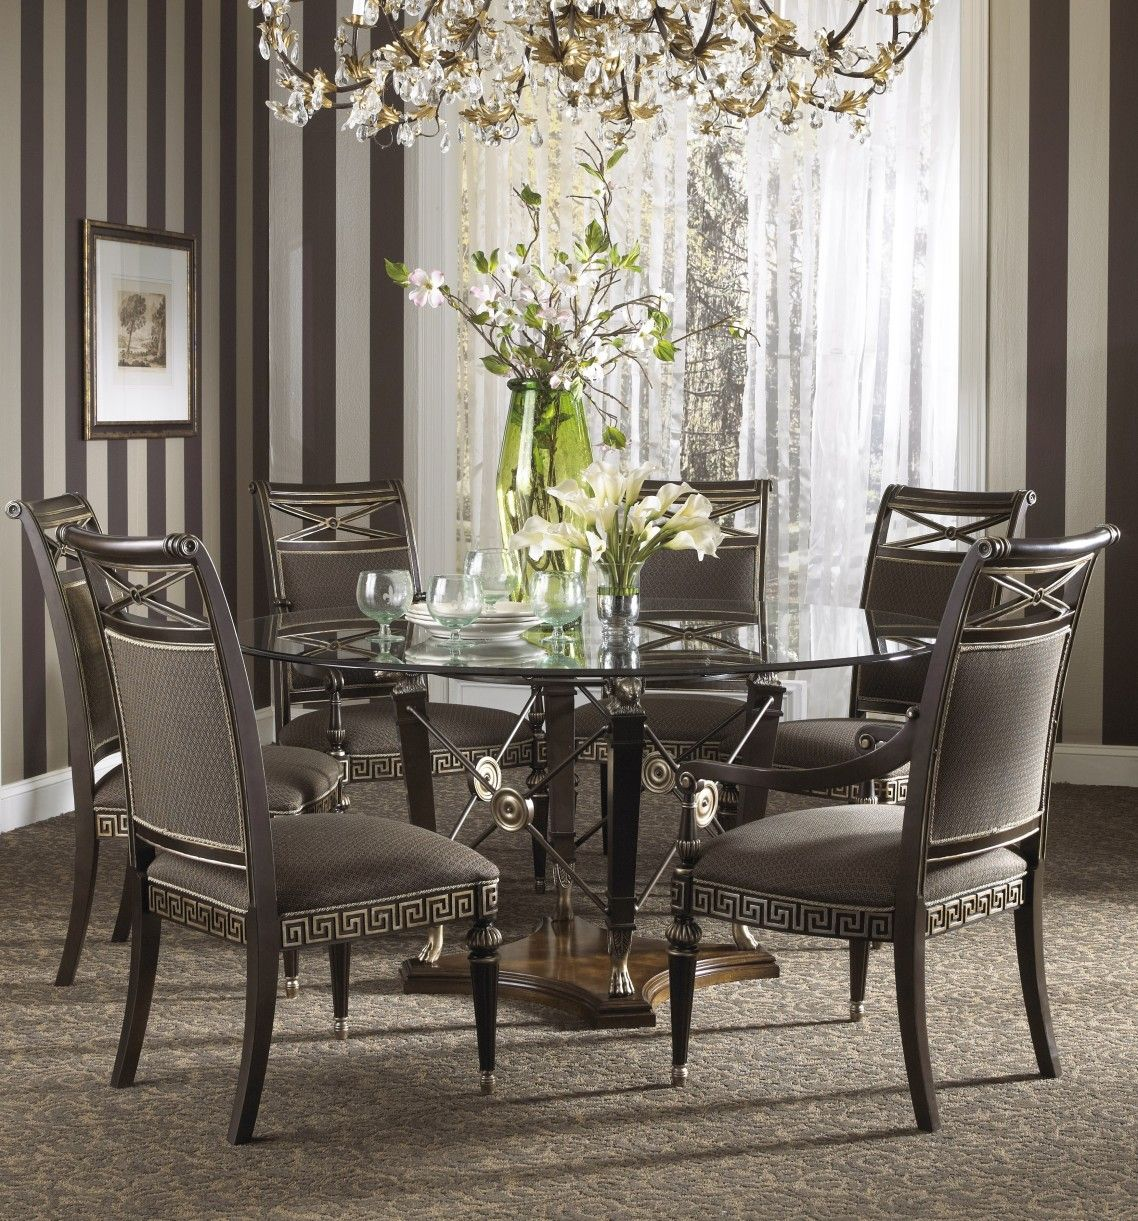 Awesome Luxury Gray Wrought Iron Dining Table Base Mixed Round Glass Counter Top Formal Dining Room Sets Glass Dining Room Table Round Dining Room